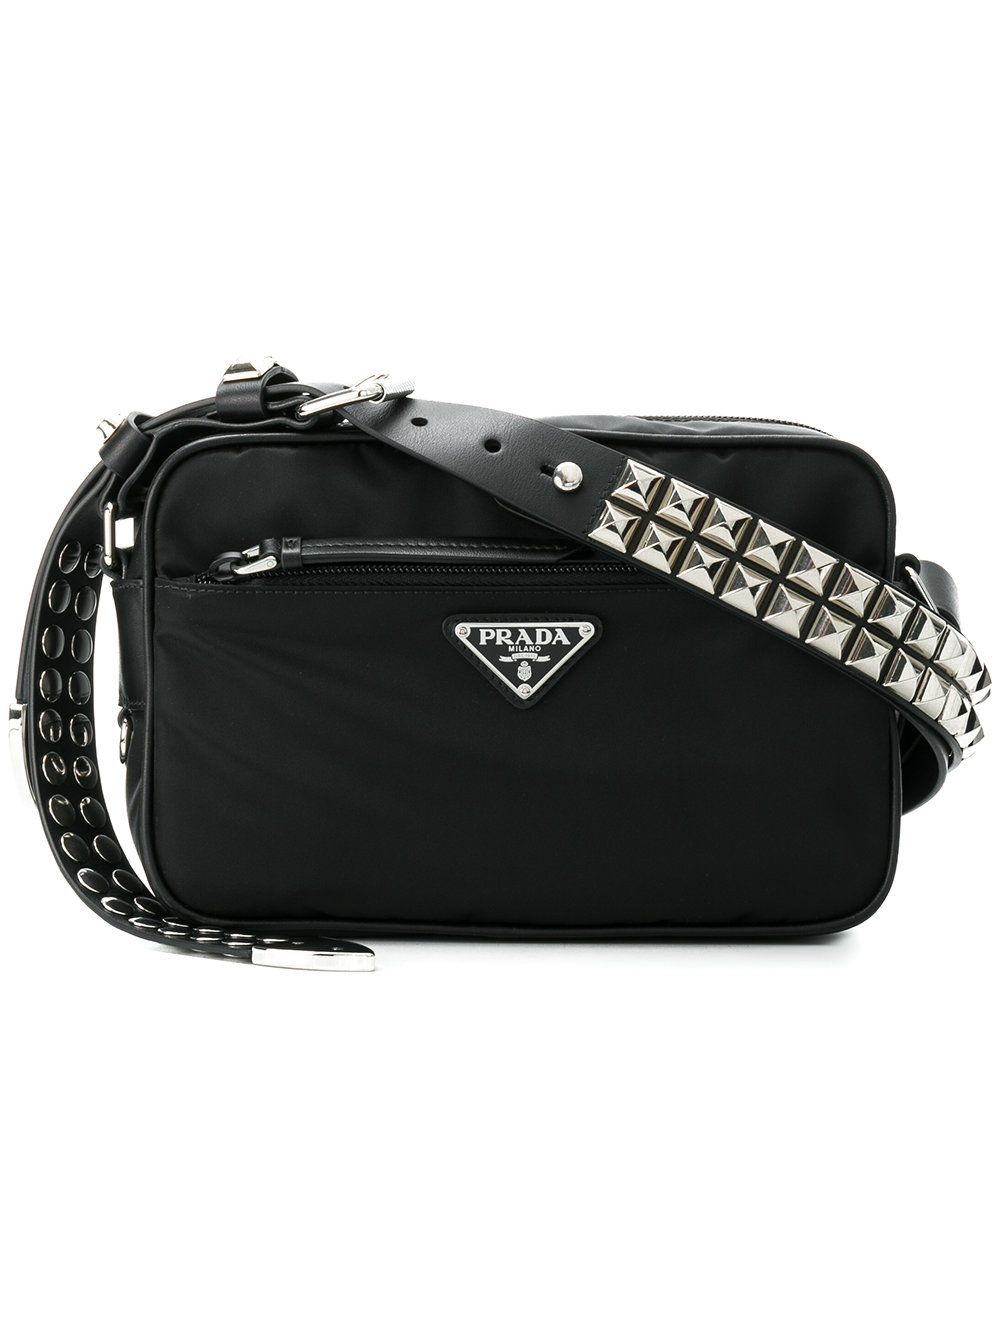 7aaaccb7fa3 Prada Black Studded Strap Textile Shoulder Bag in 2019 | Purses ...